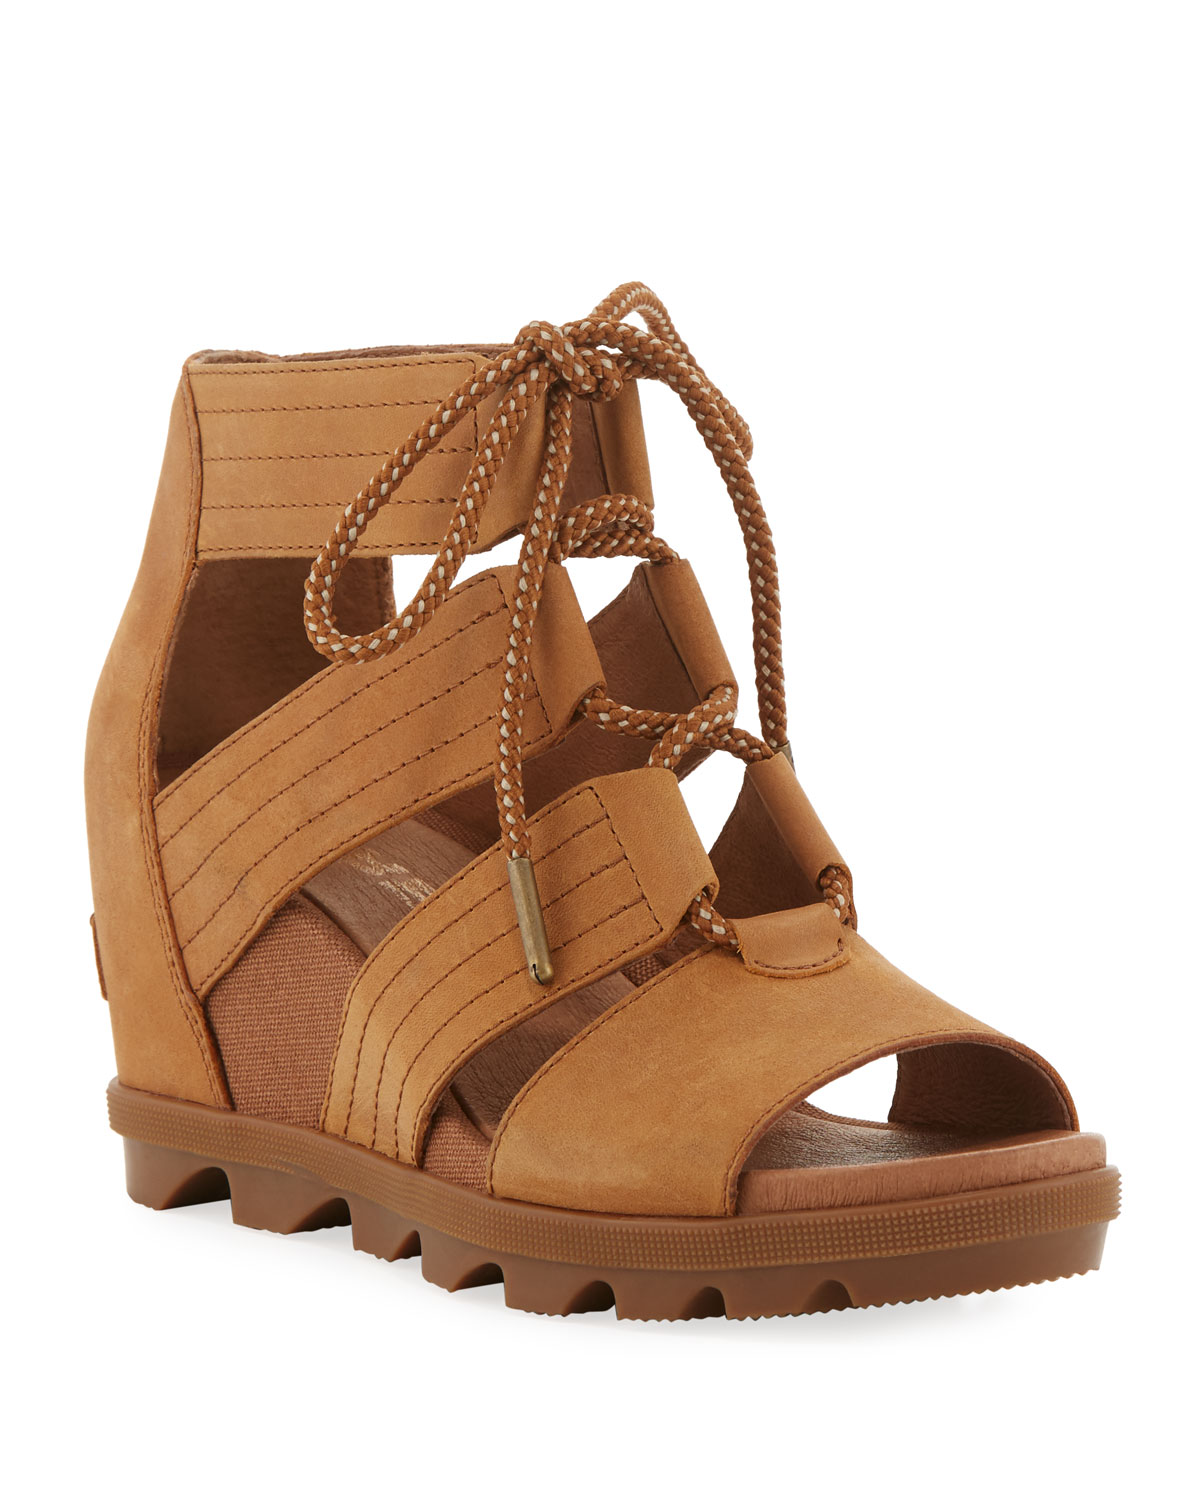 Sorel Sandals JOANIE II LACE-UP LEATHER WEDGE SANDALS